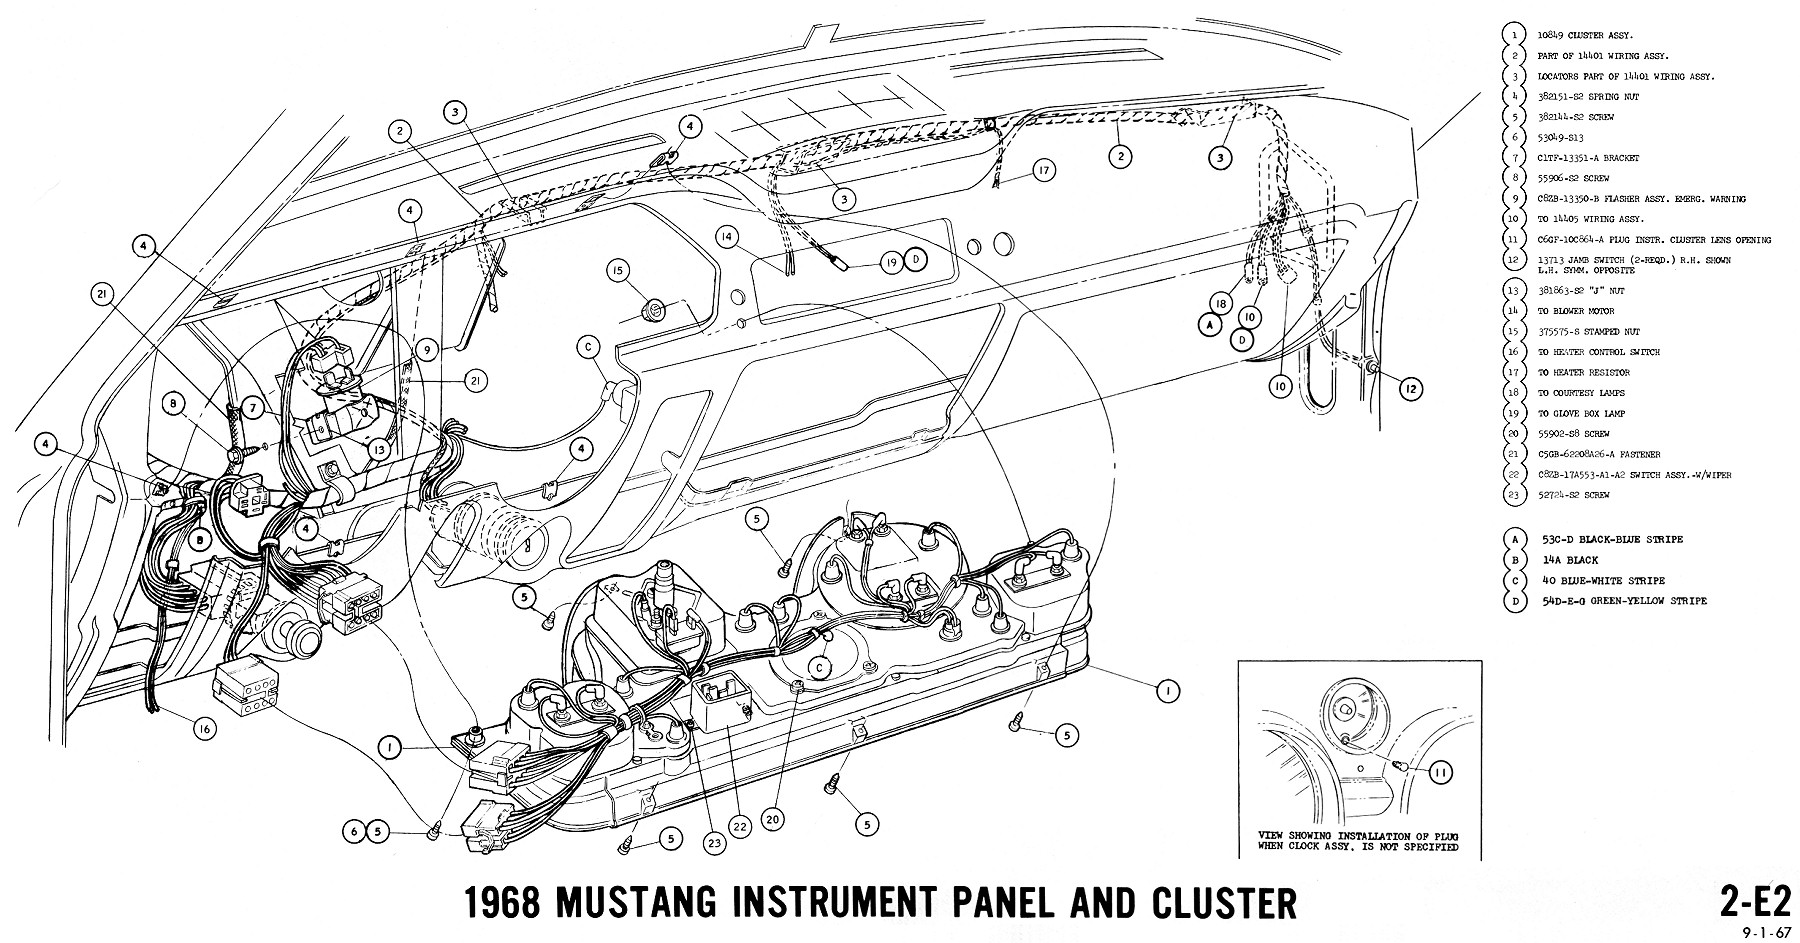 1968 Impala Dash Wiring Diagram Complete Diagrams Fuse Box 68 Mustang Find U2022 Rh Empcom Co Painless Wiper Pump